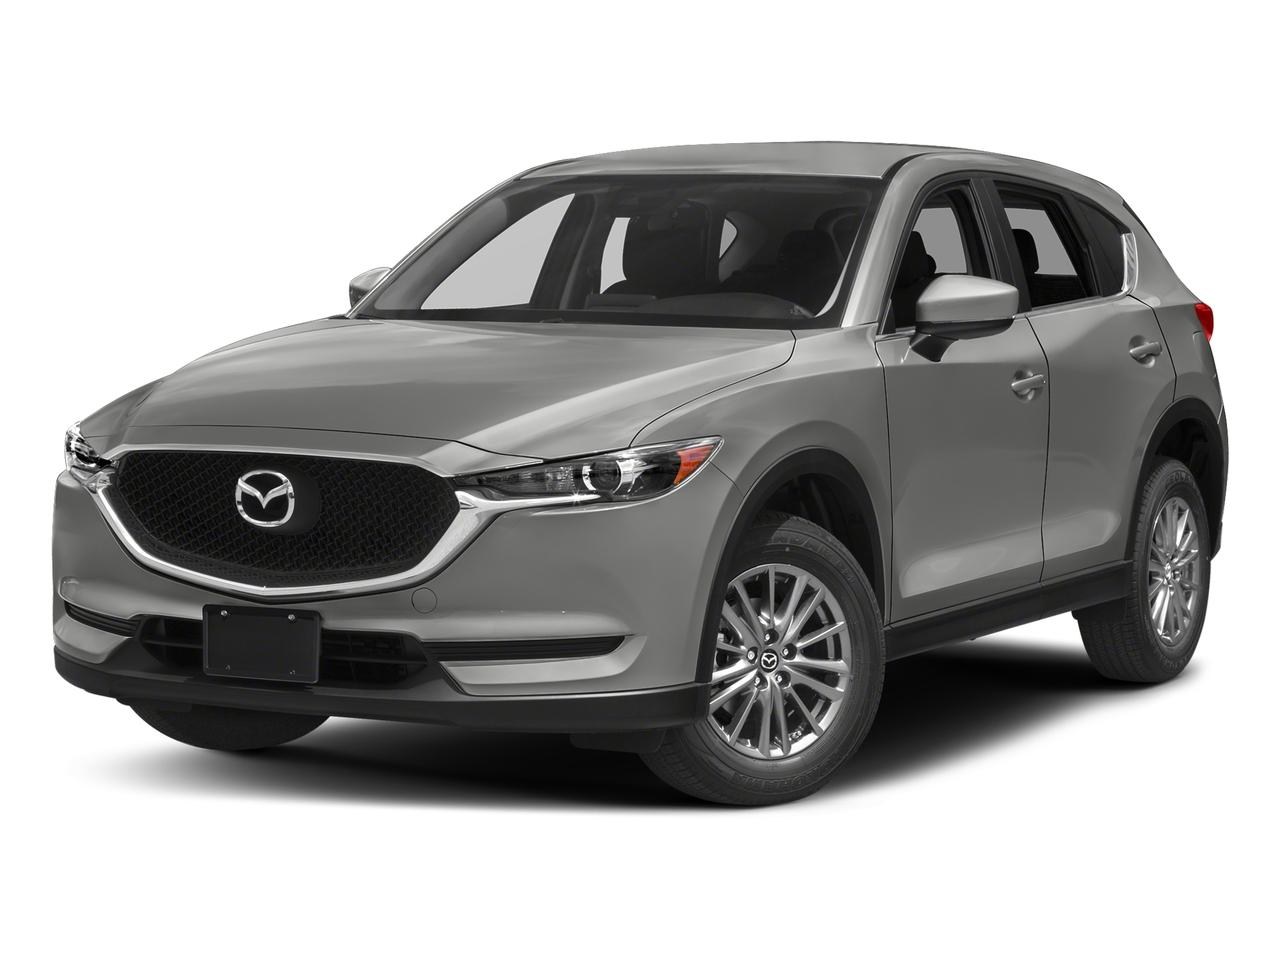 2017 Mazda CX-5 Vehicle Photo in Houston, TX 77074